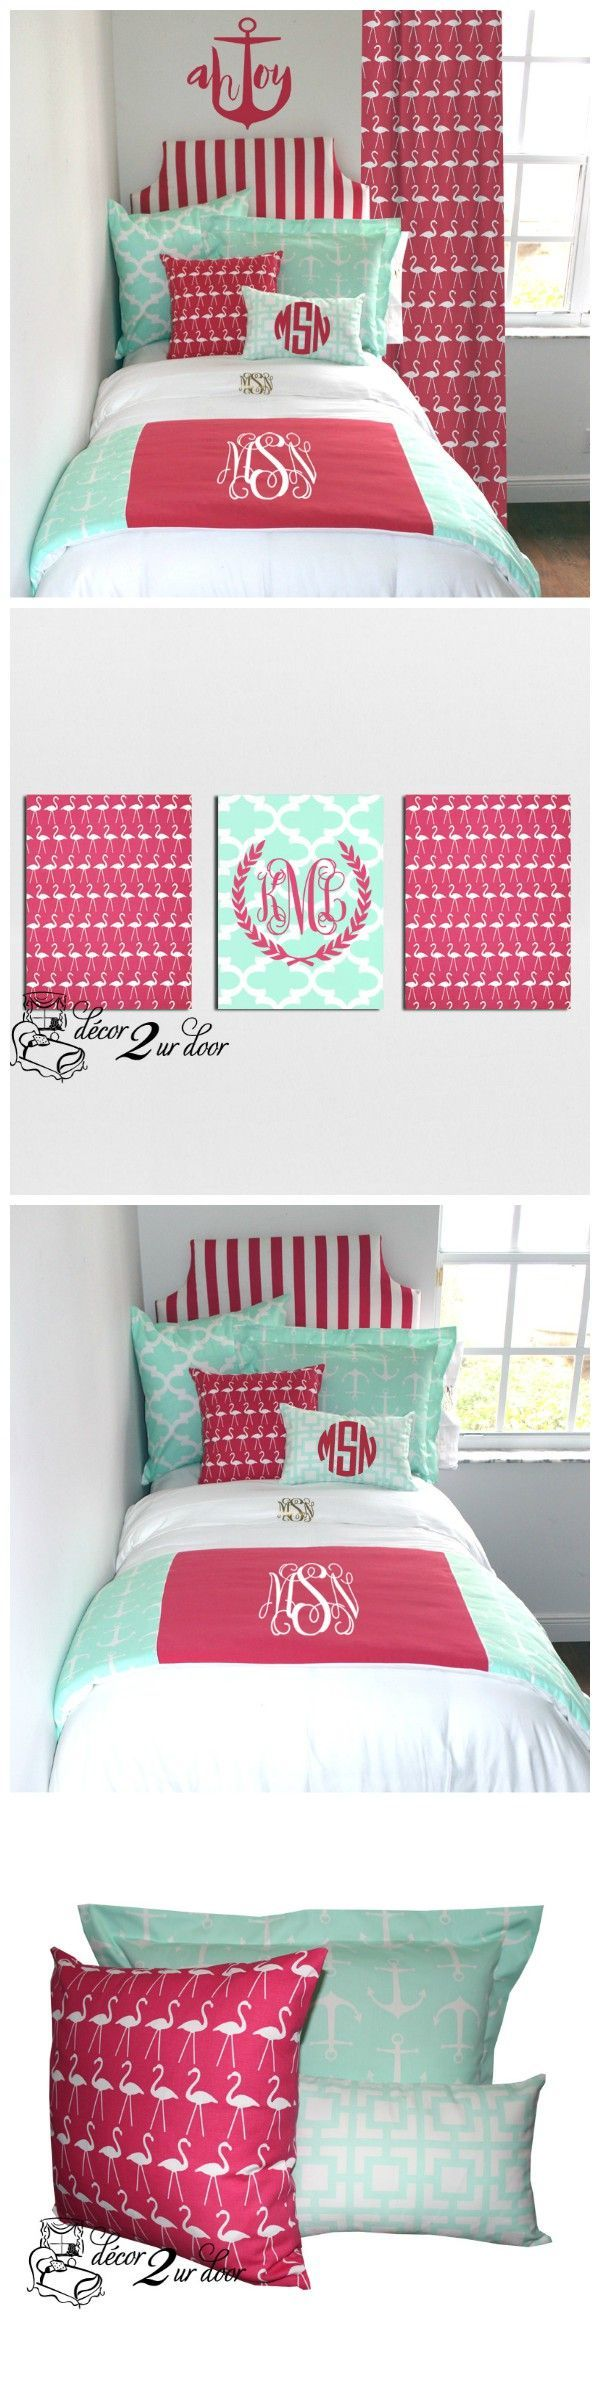 Mint and Scorching Pink Anchors Nautical Designer Bedding Set